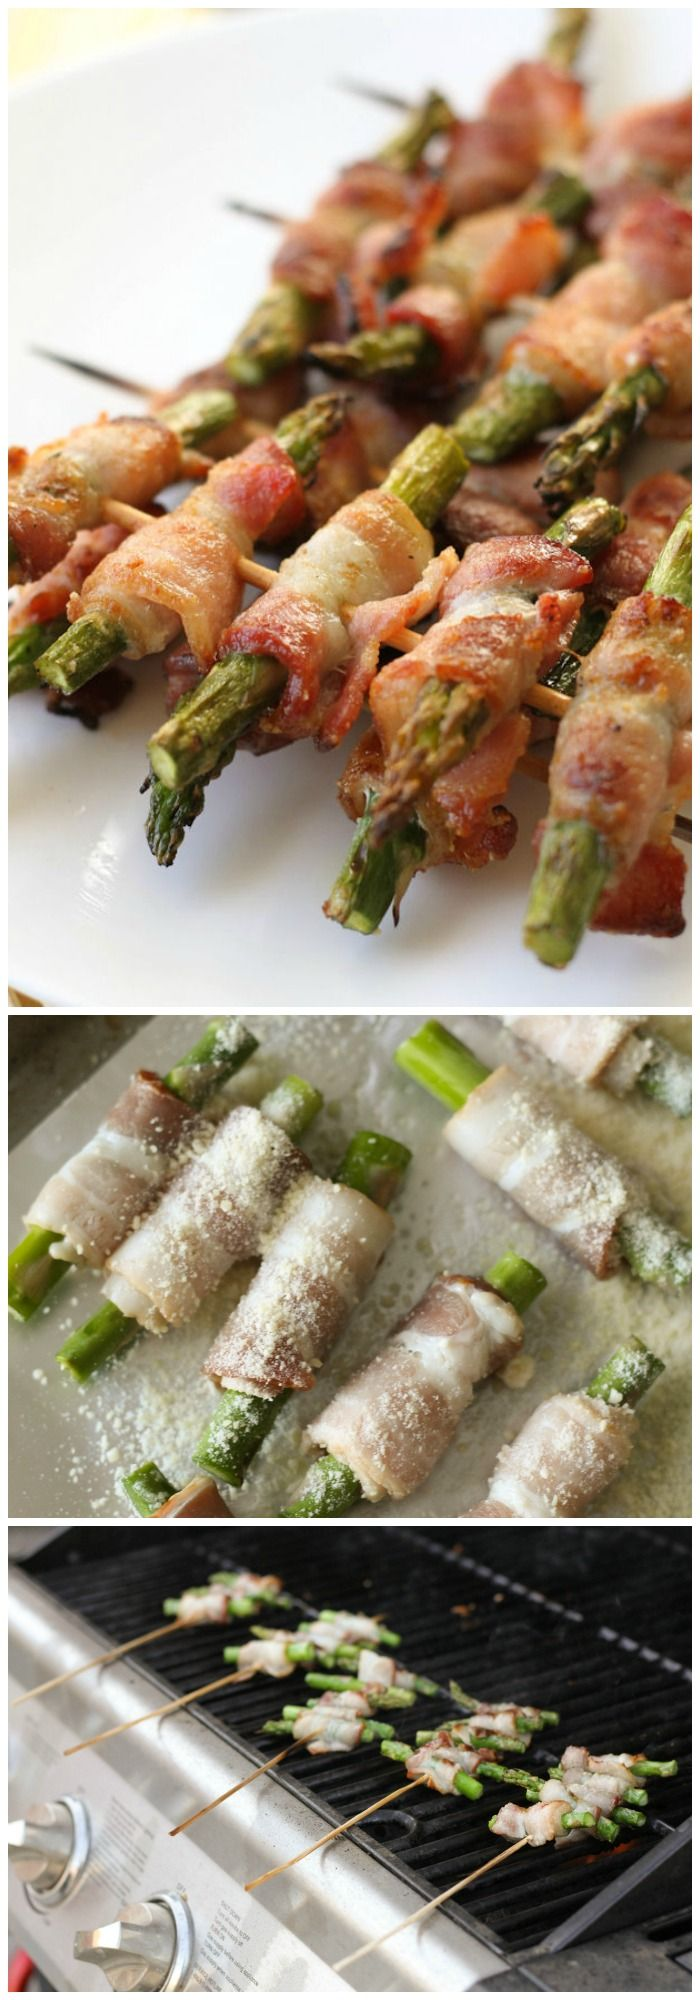 Disneyland- Bacon Wrapped Asparagus Skewers